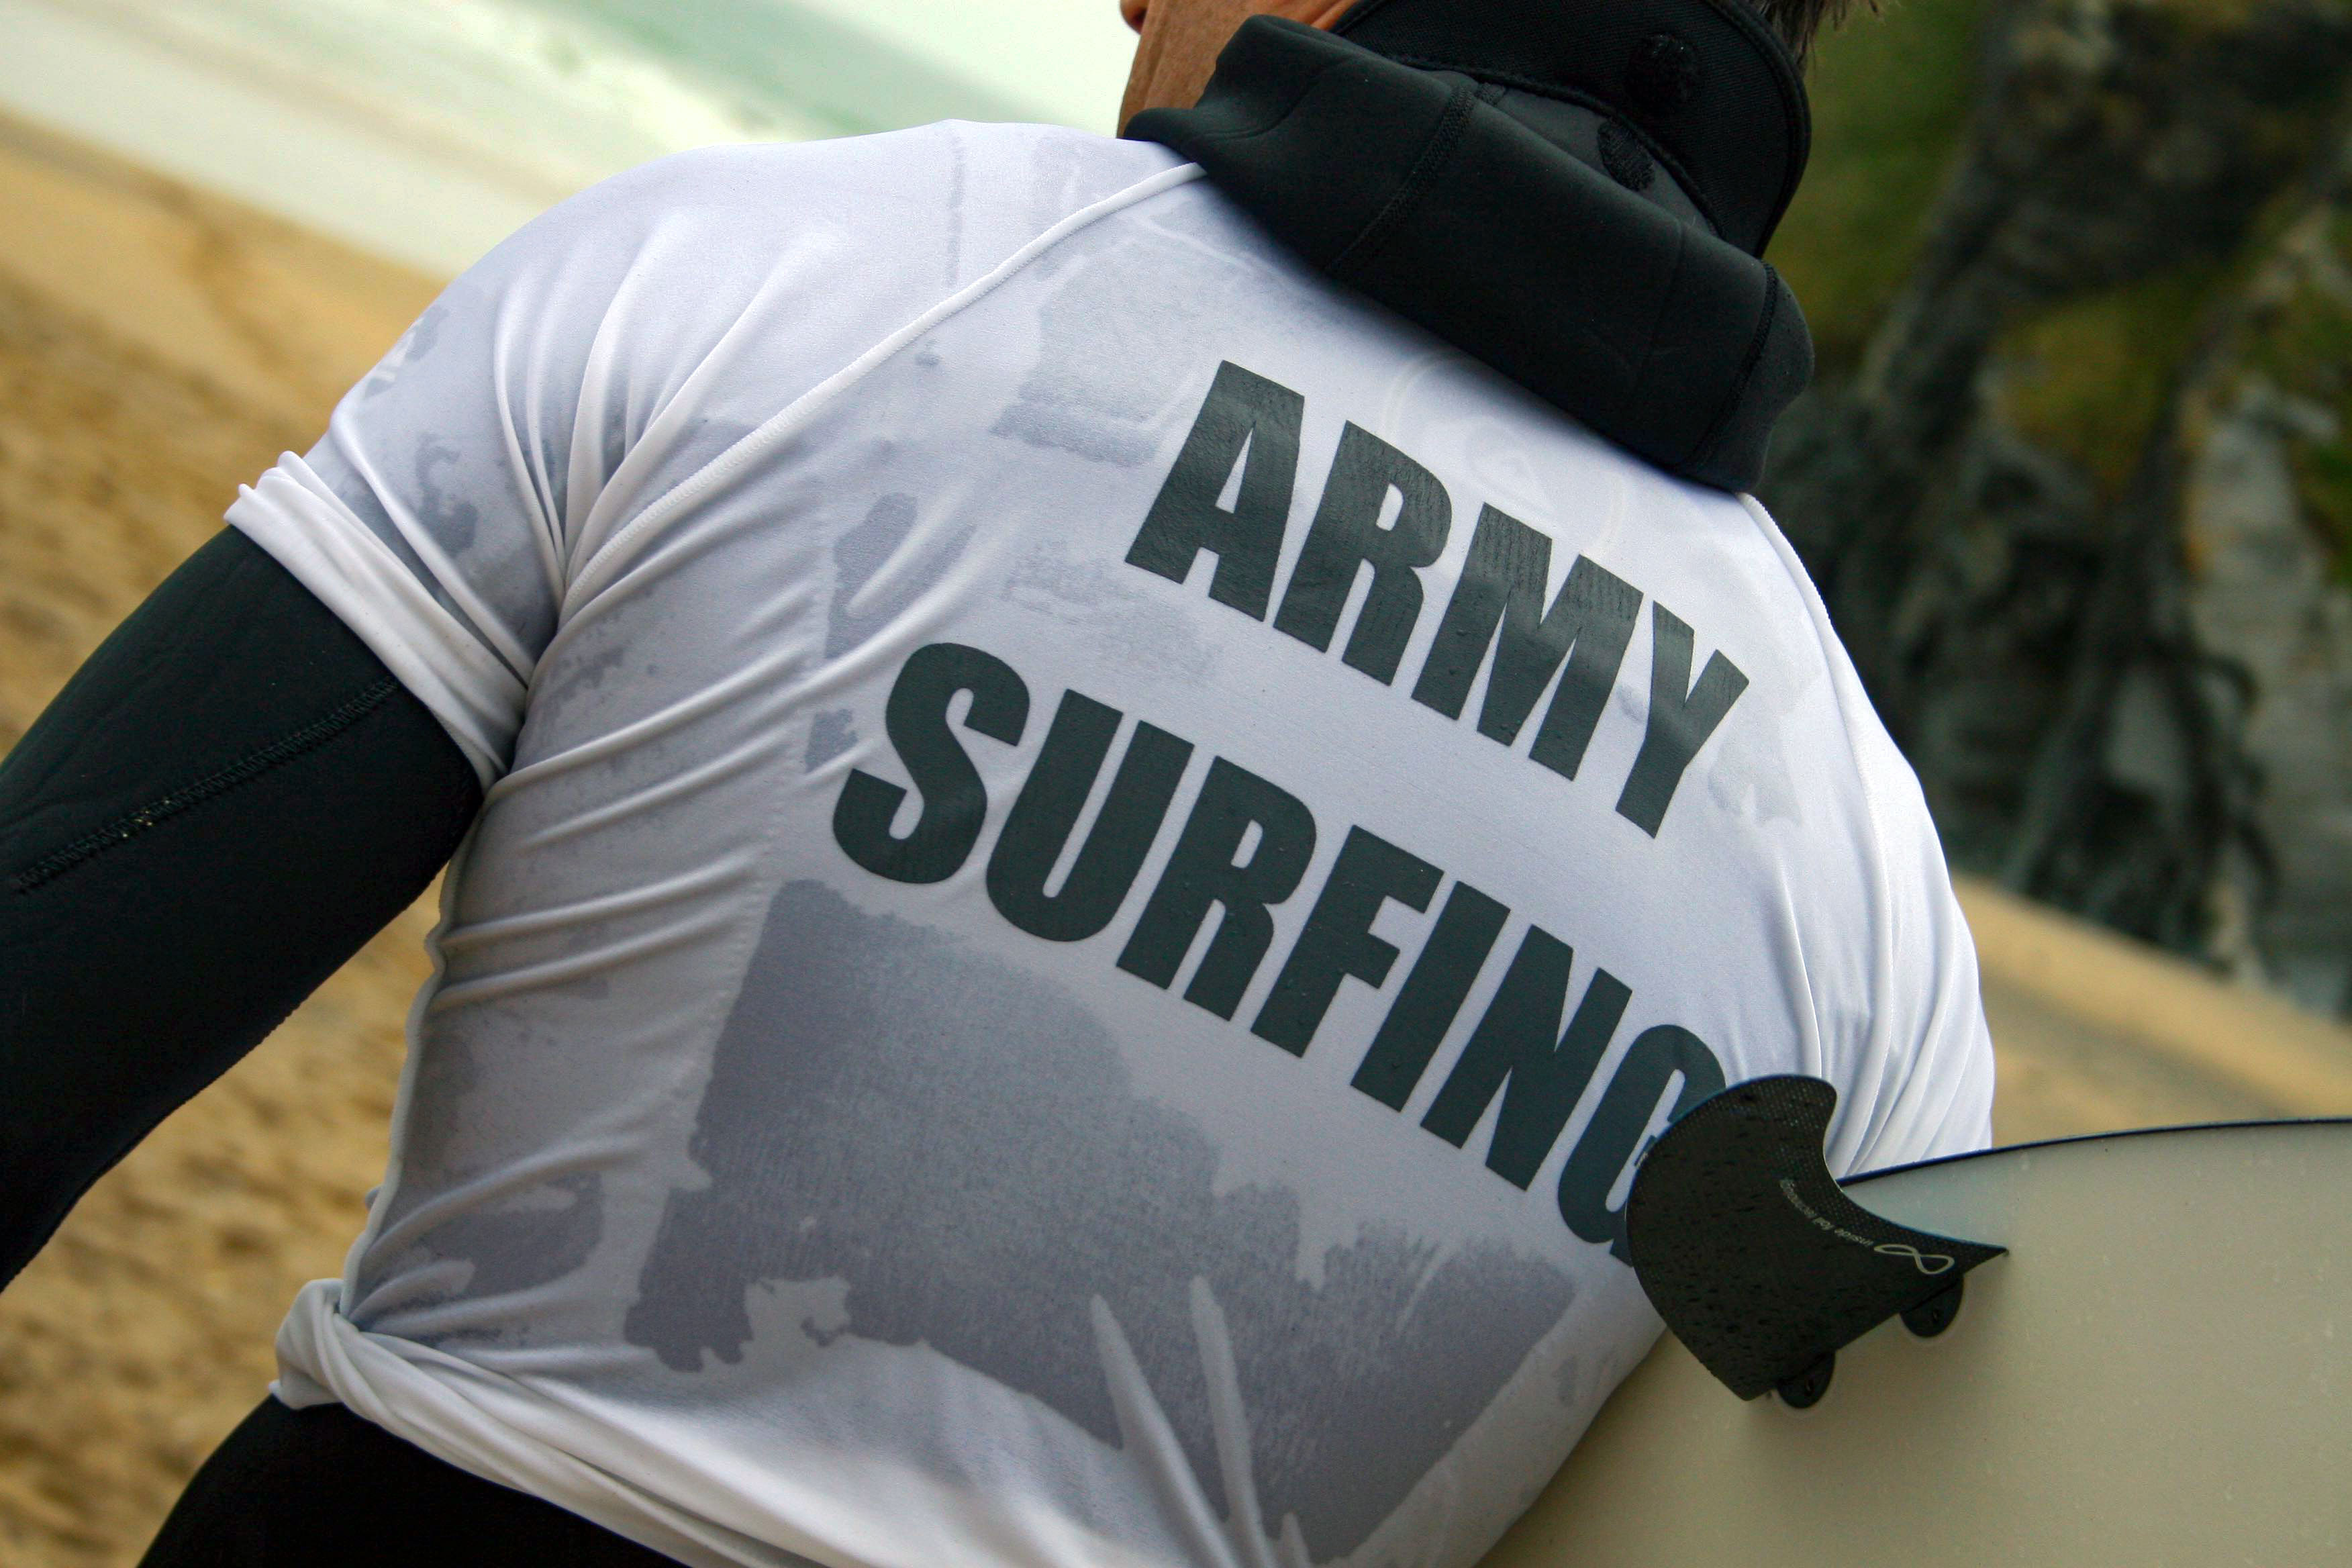 Army Surfing Championships AI